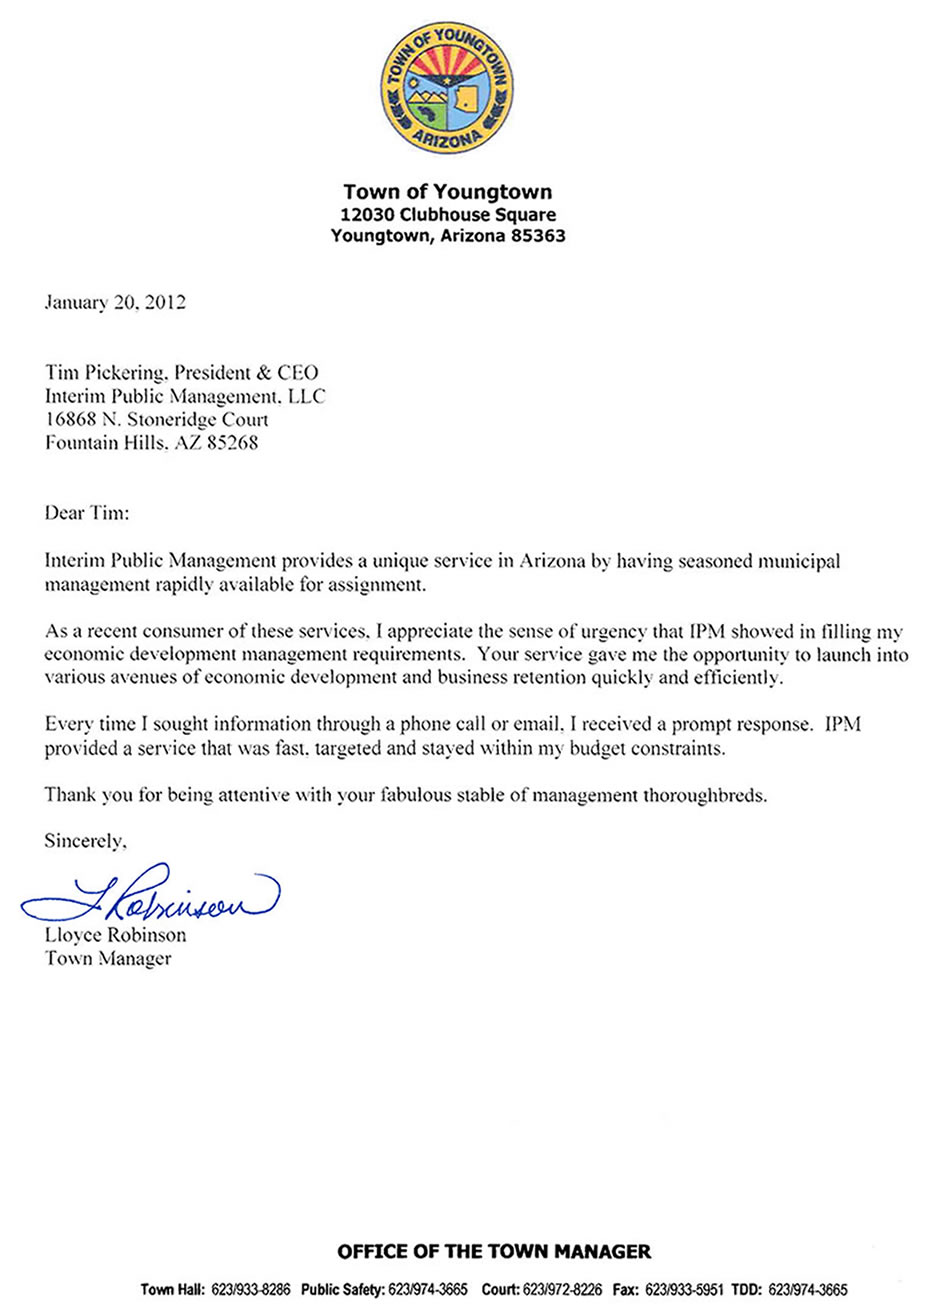 Letter from Lloyee Robinson Youngtown Town Manager